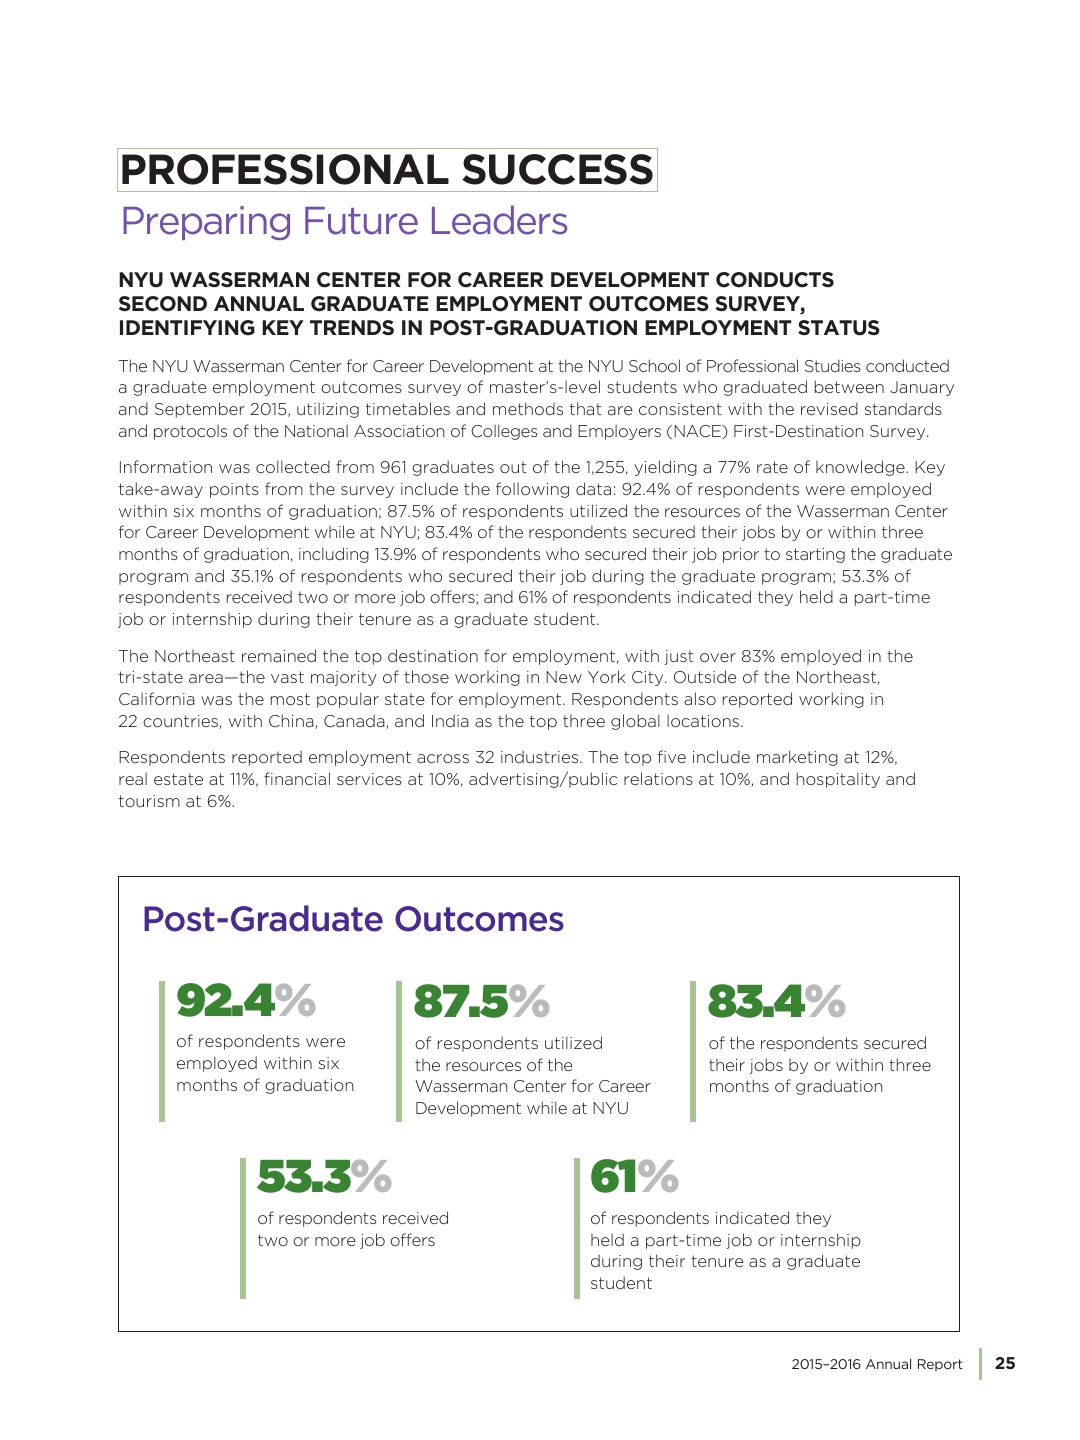 2015-2016 NYUSPS Annual Report - Powered by PageTurnPro com